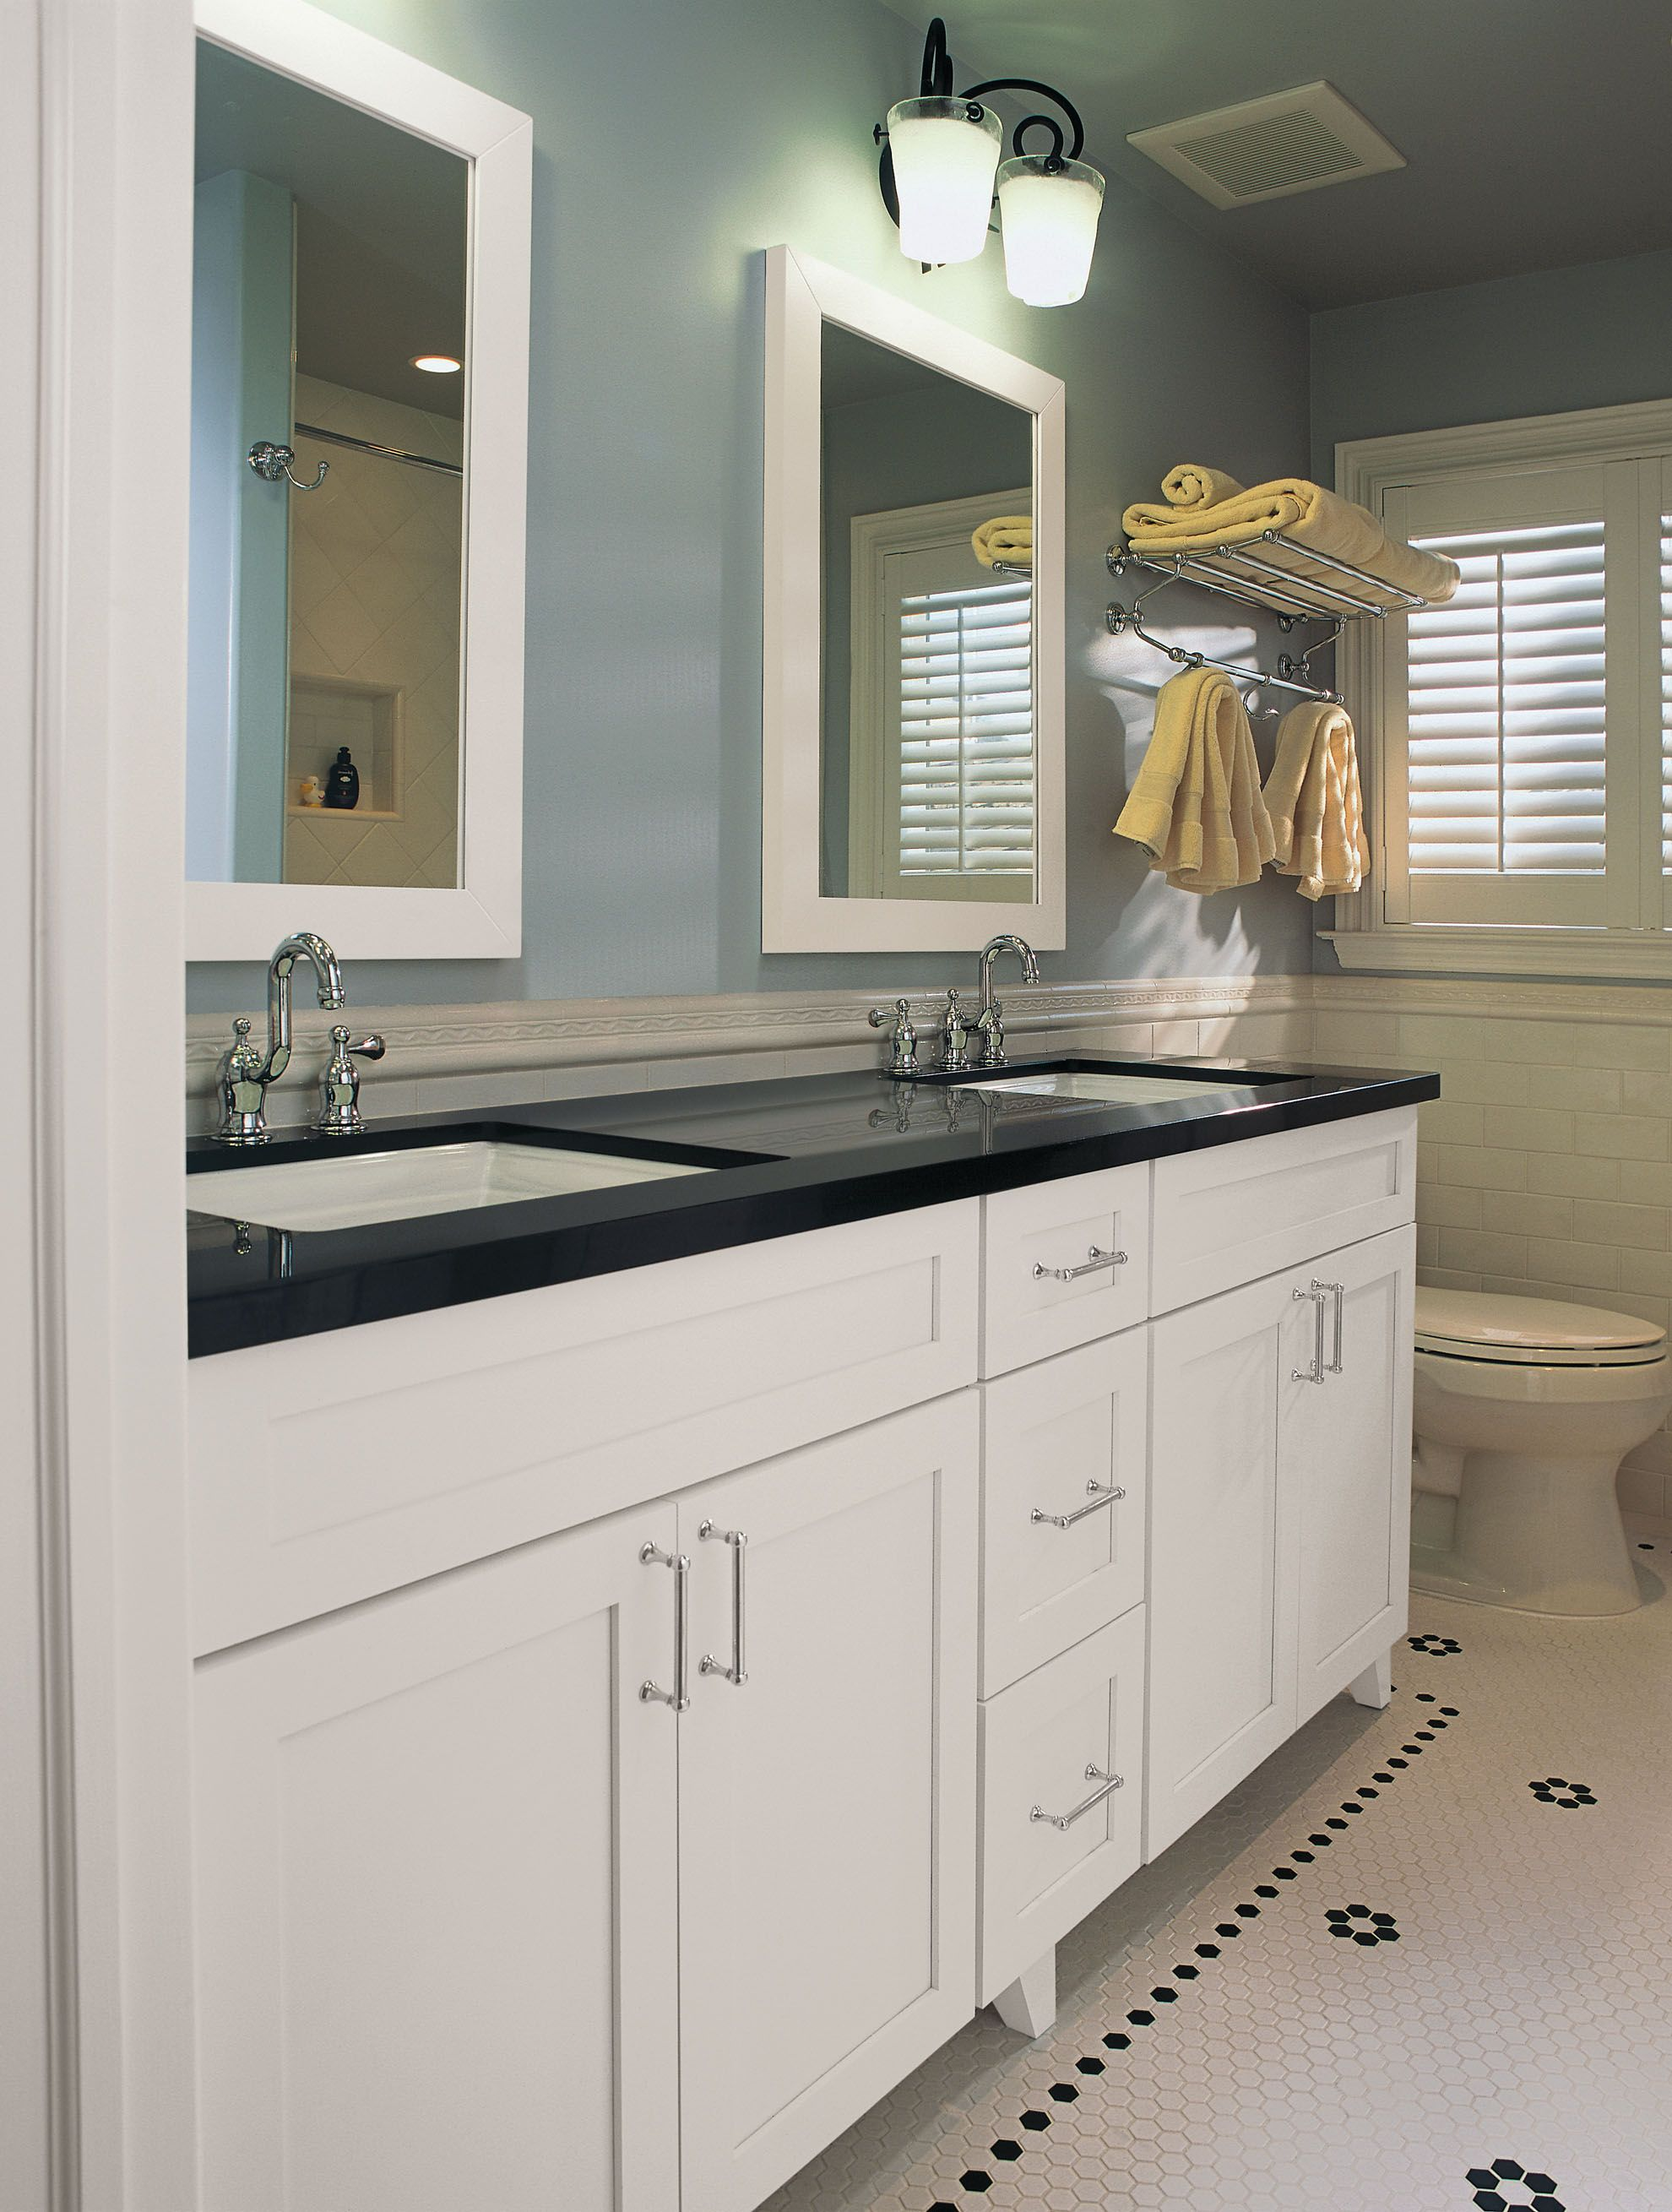 for under with ideas guide step a vanity cabinet bathroom small storage fancy